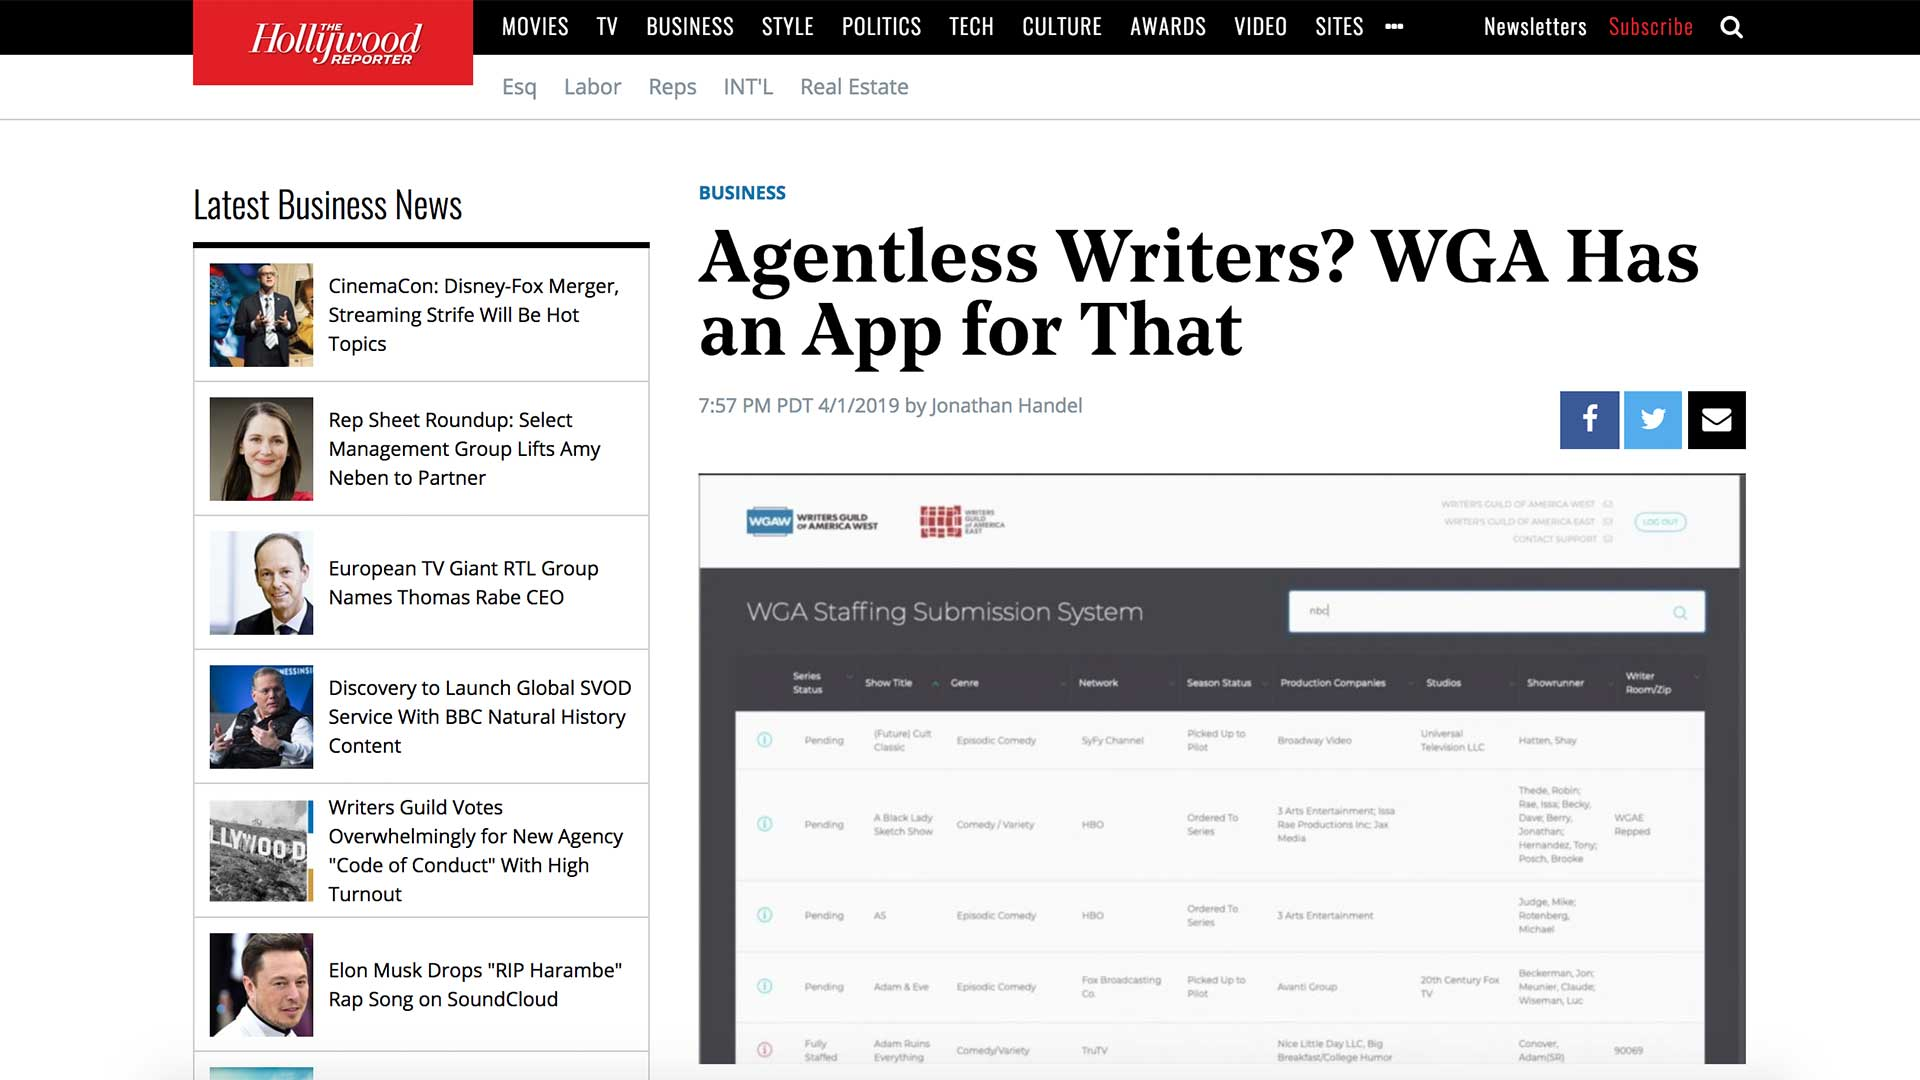 Fairness Rocks News Agentless Writers? WGA Has an App for That